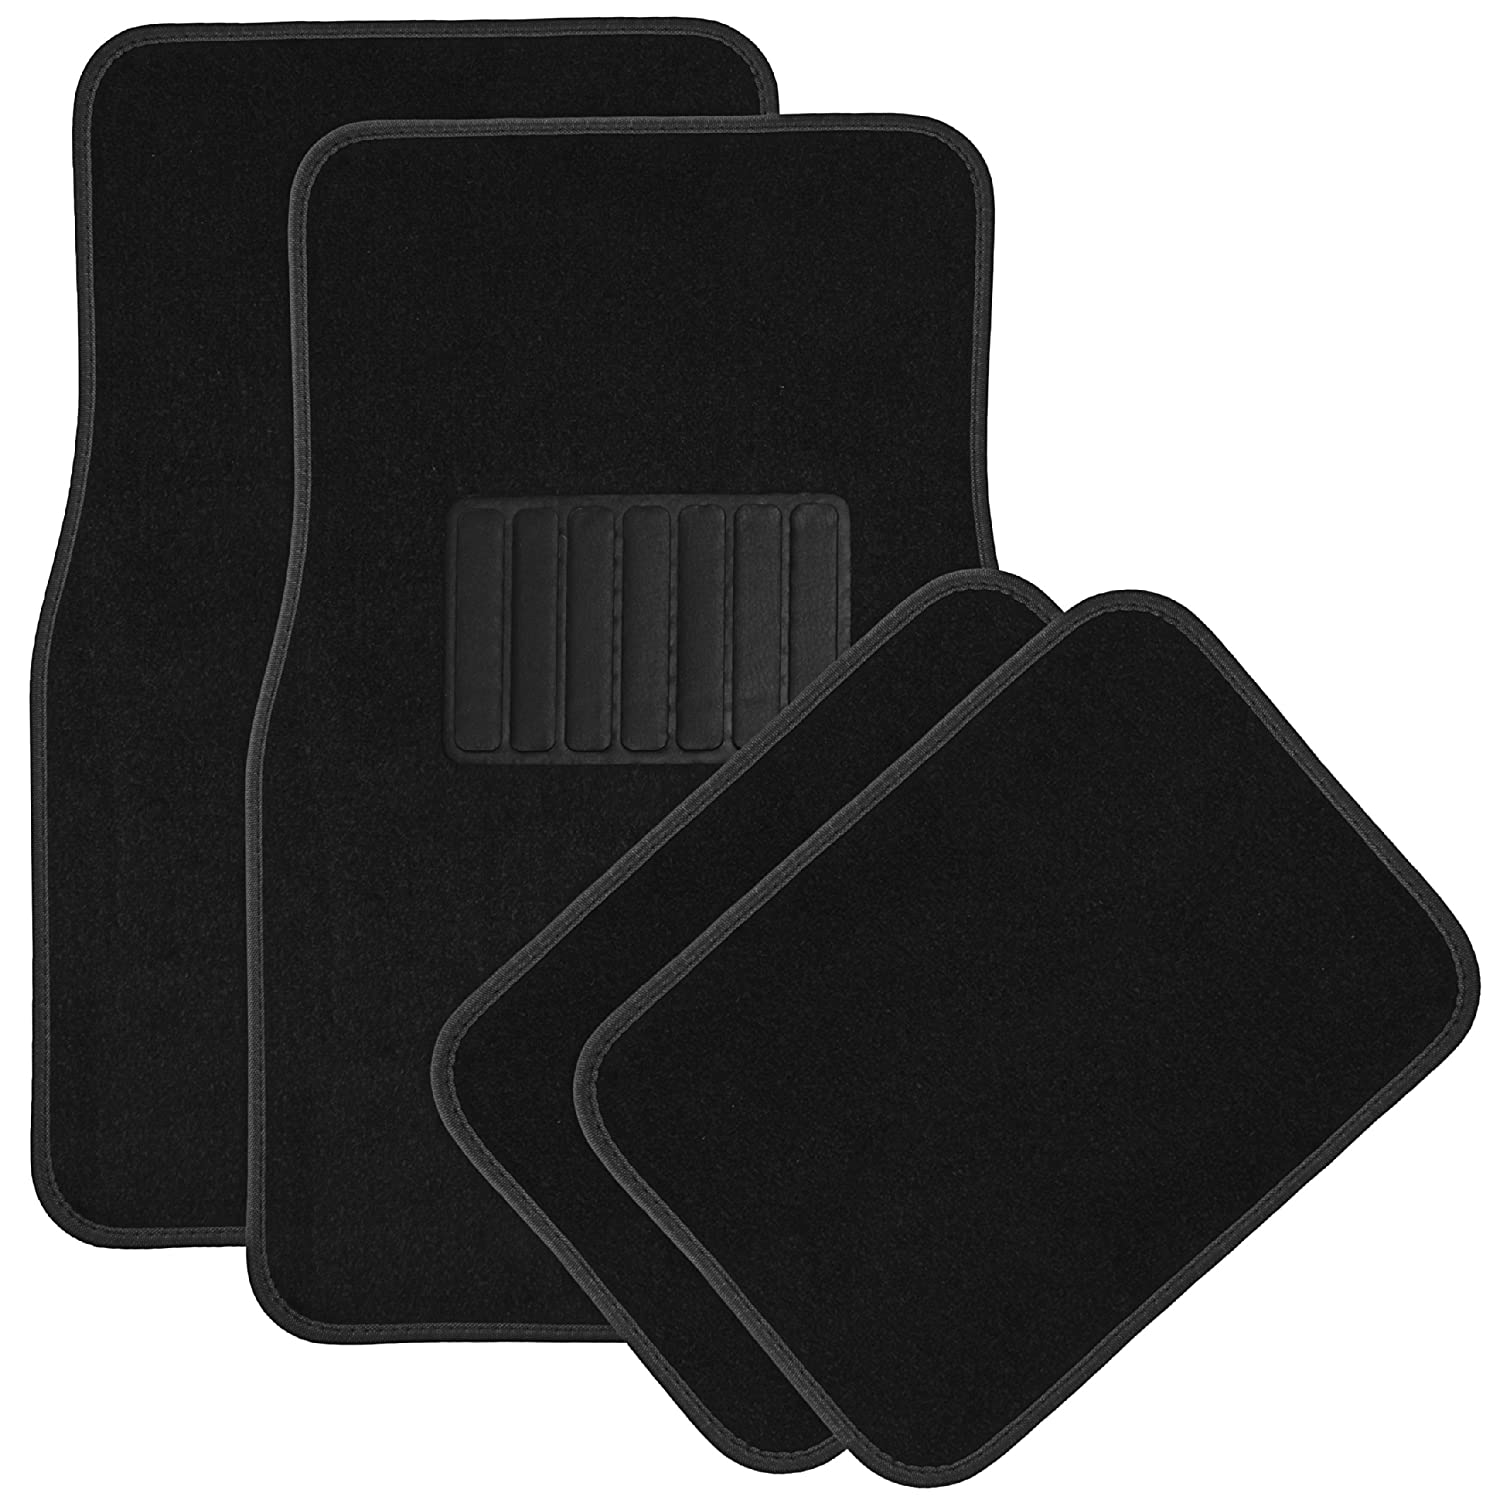 Weathertech floor mats honda pilot 2006 - Oxgord Universal Fit Front Rear 4 Piece Full Set Heavy Duty Economy Carpet Floor Mat Black